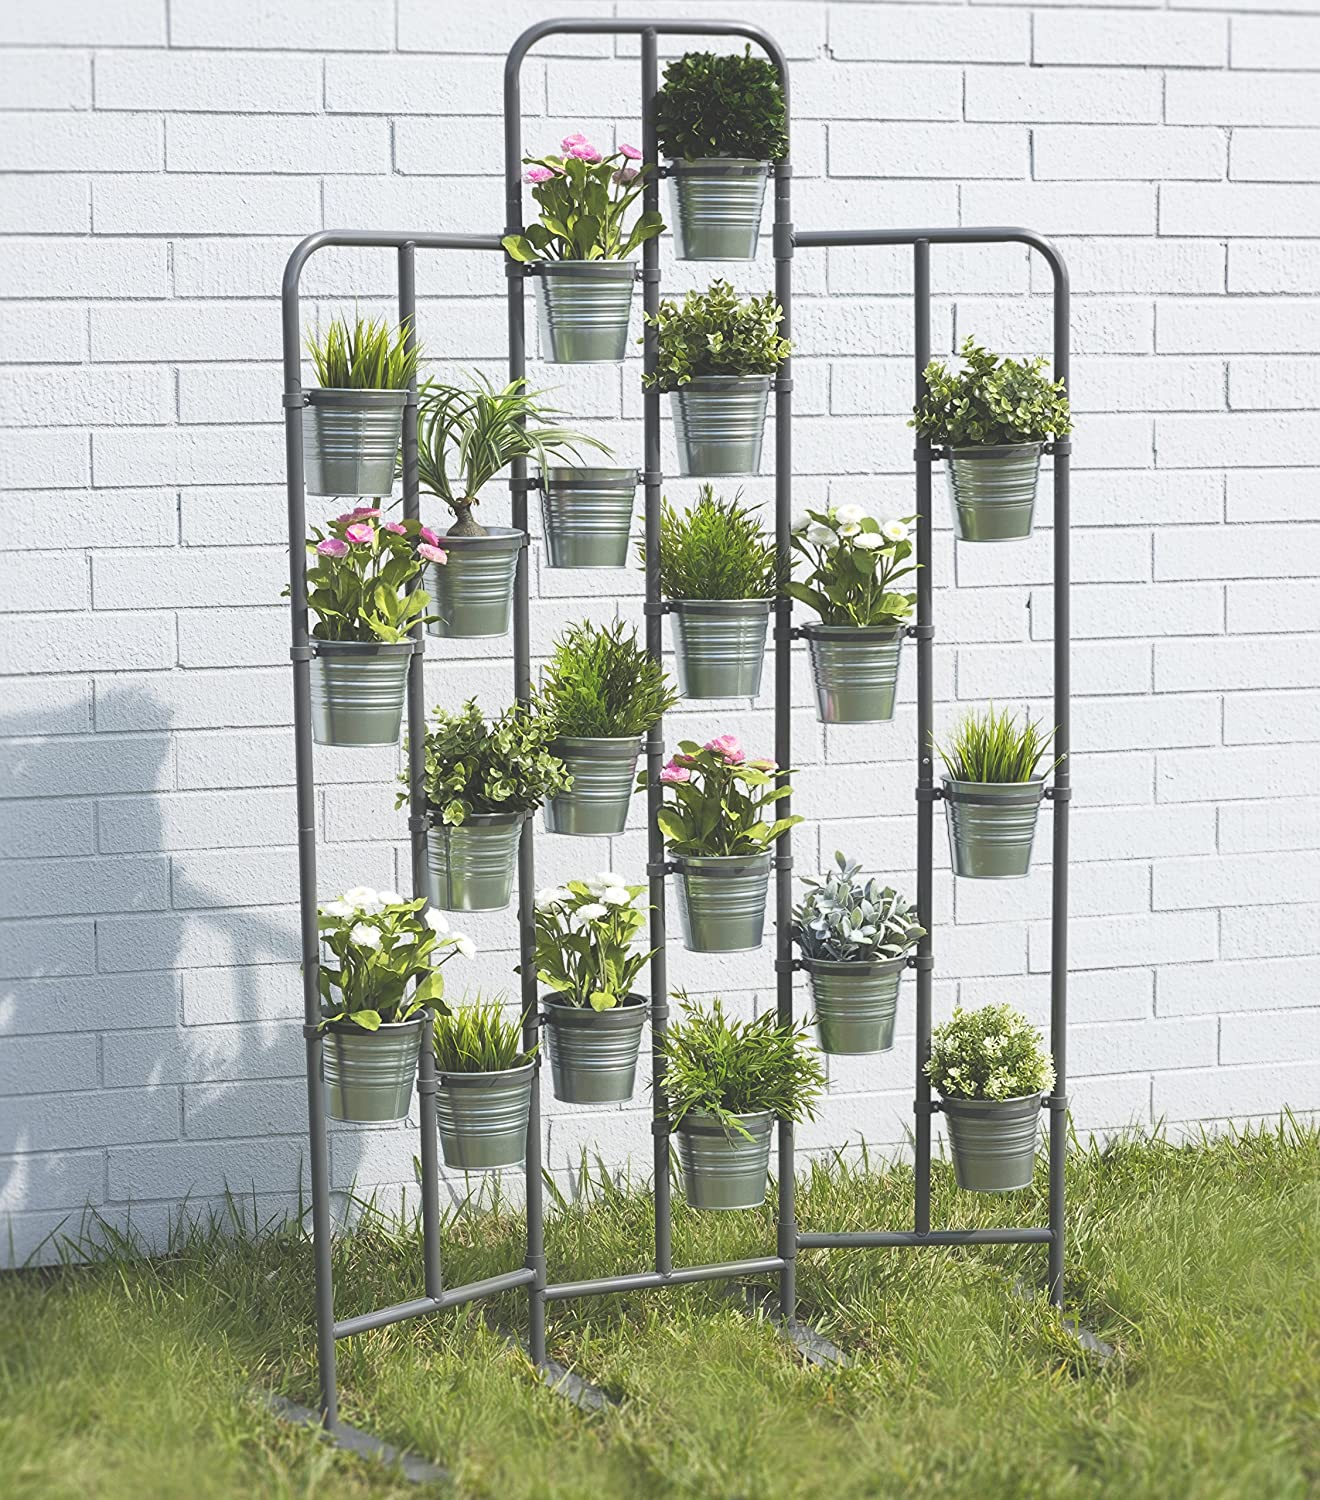 unlike sweet a mount wall ga notinclude where patio planter or drips do planters garden vertical frame living so water m indoor panels outdoor be